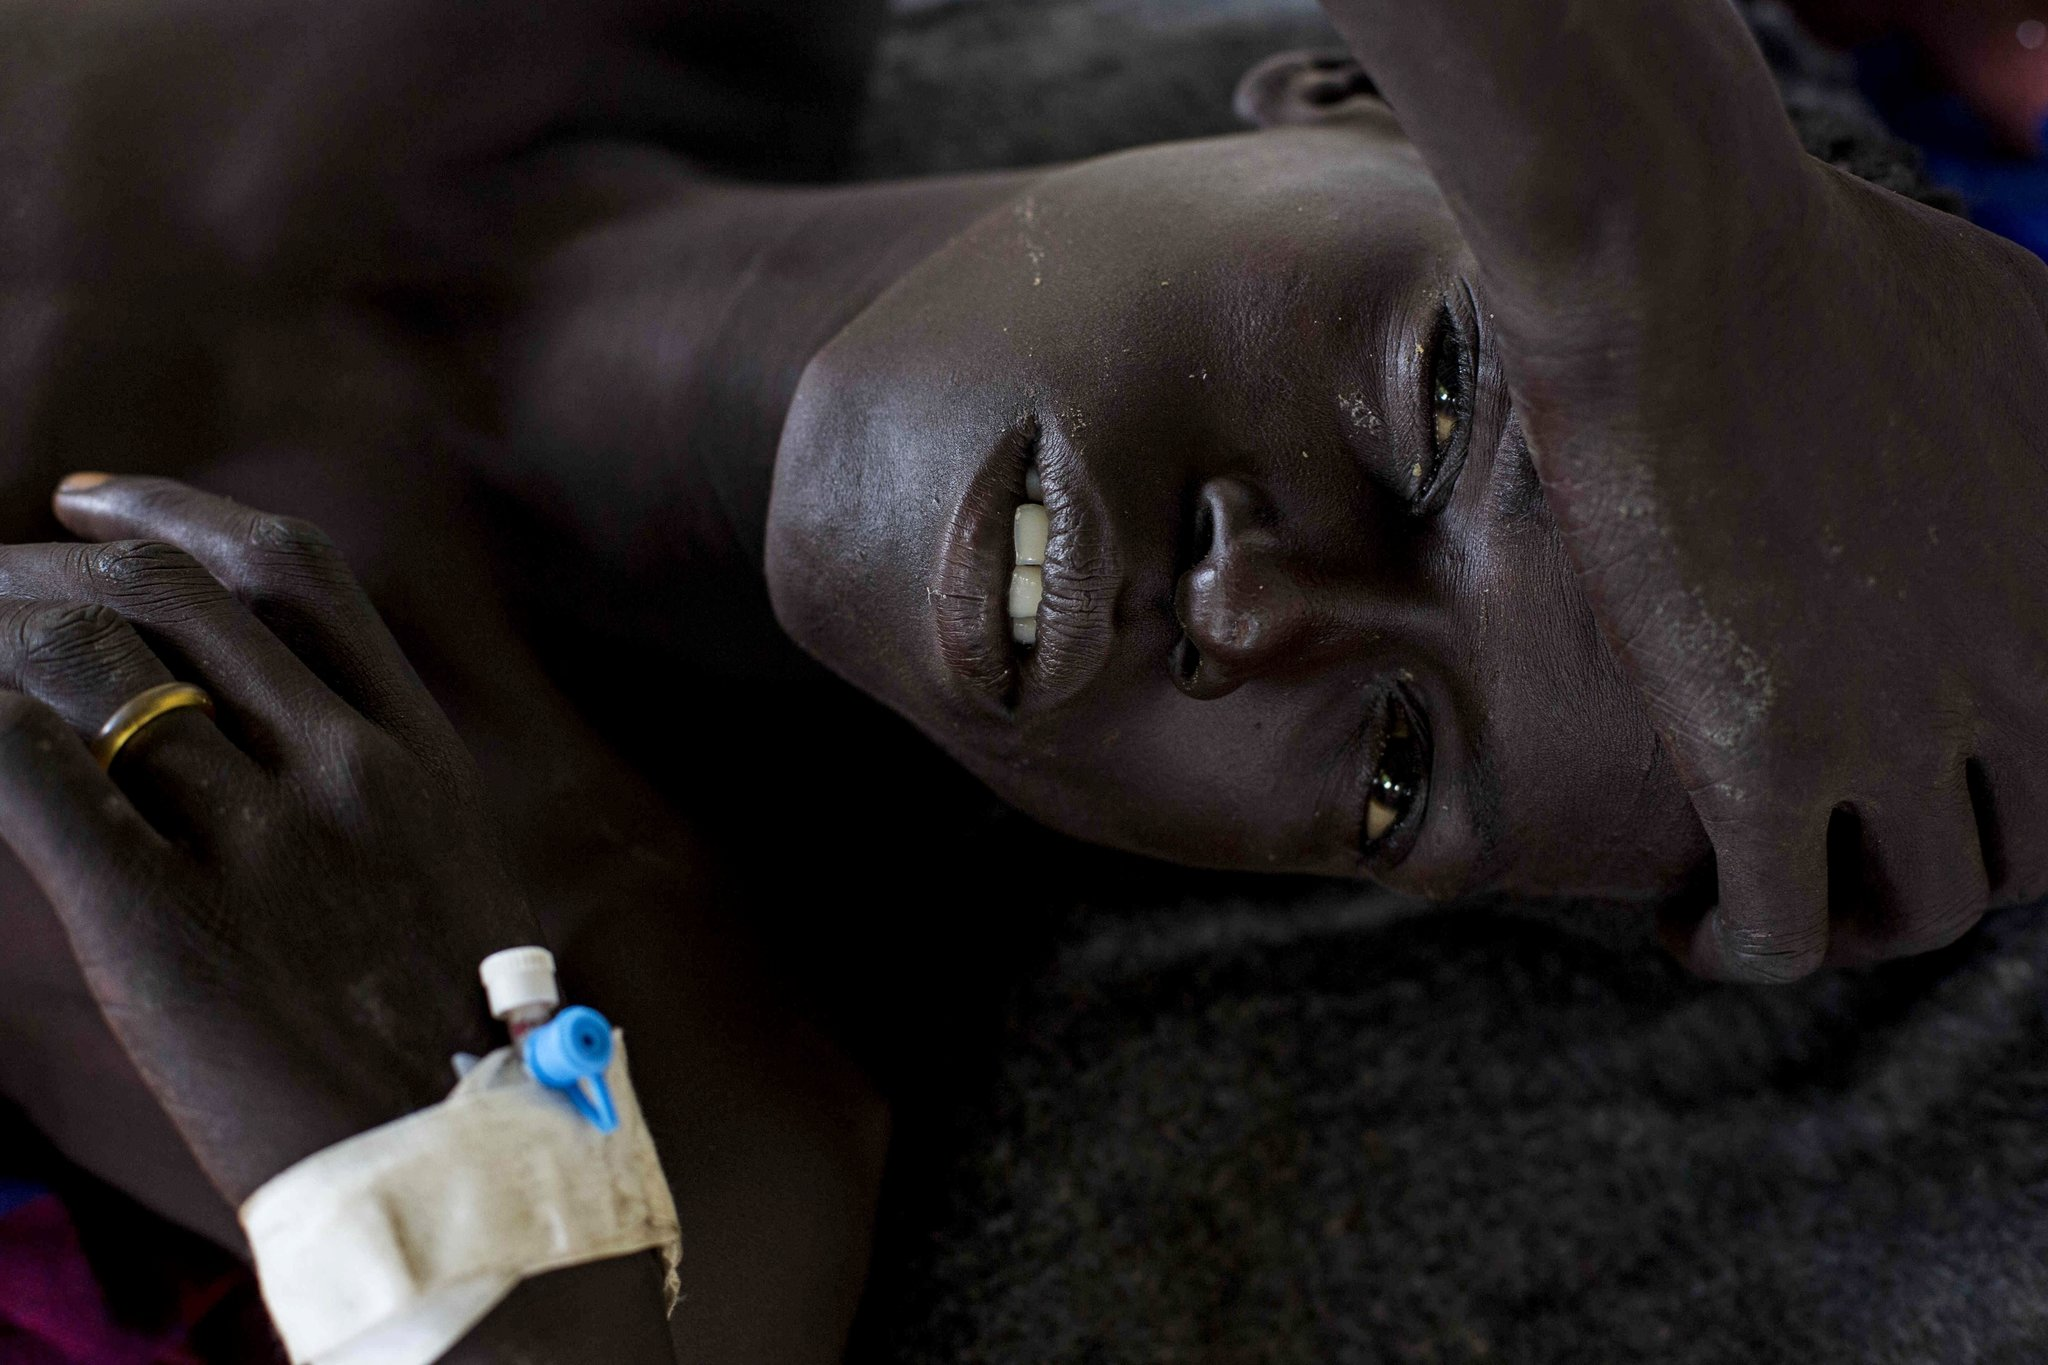 Man wounded in Jonglei State, South Sudan. Photo, Camille Lepage.